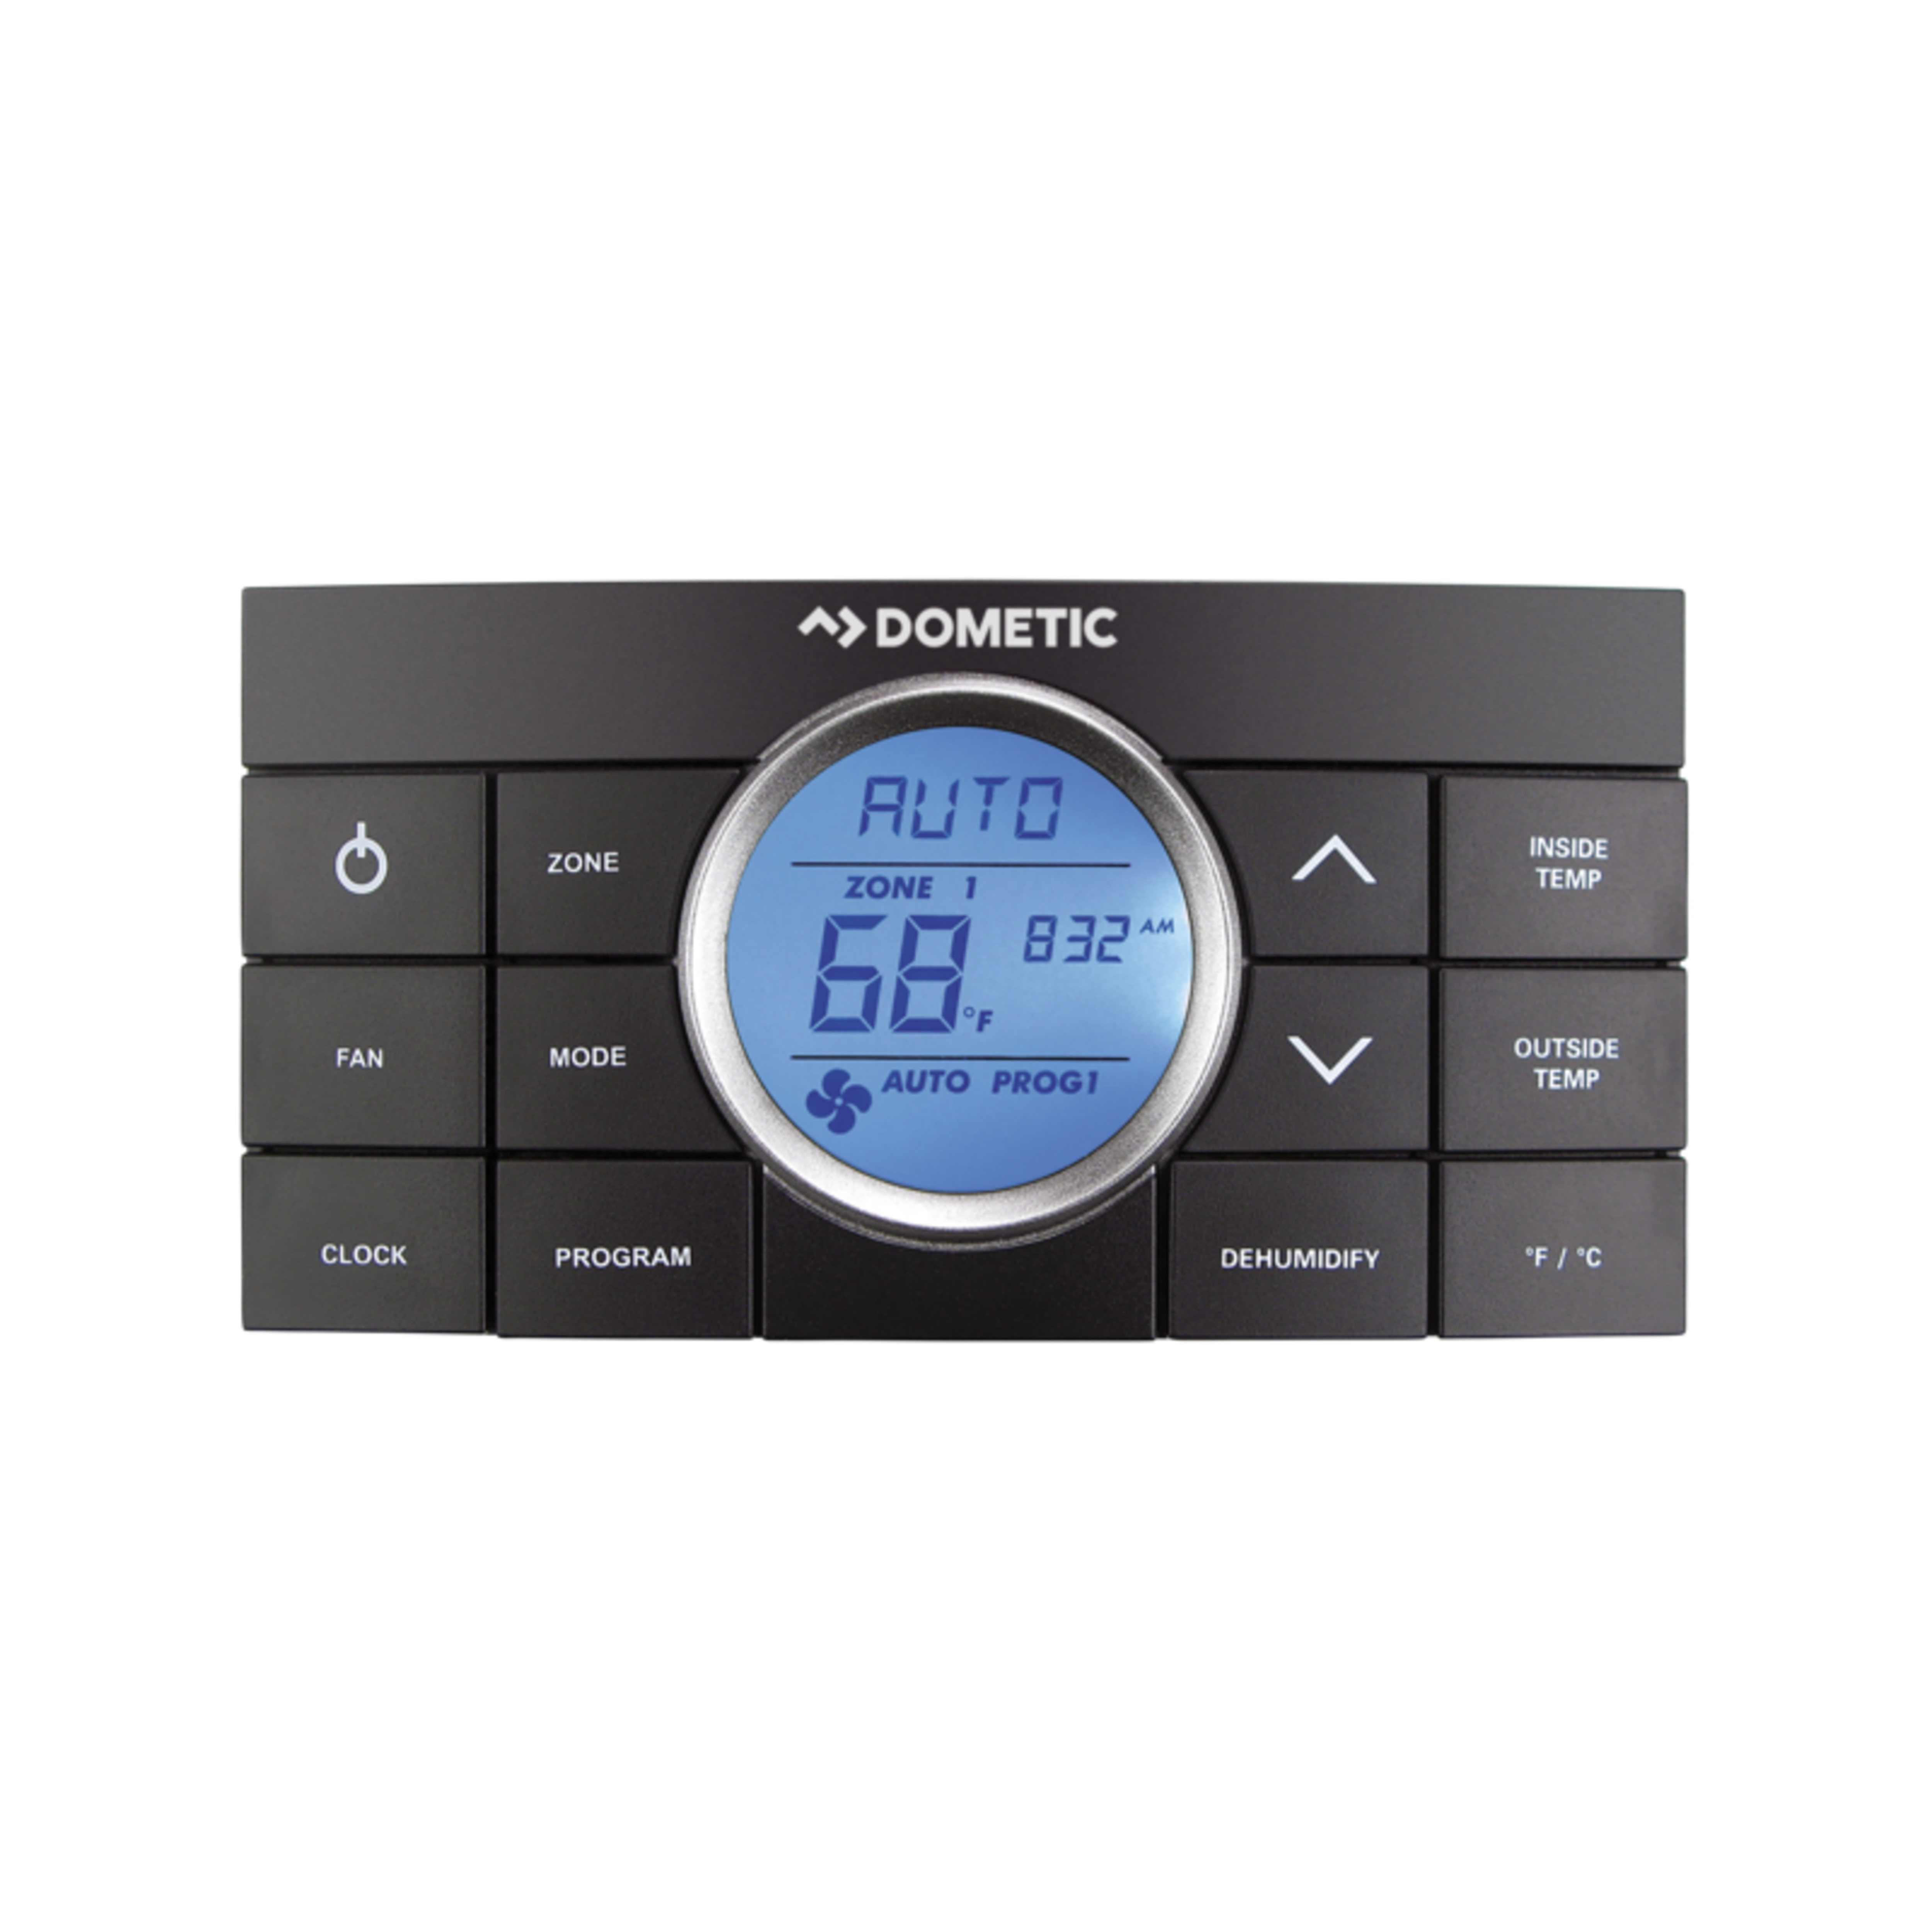 dometic comfort control center multi zone ccc thermostat in white Duo Therm RV Thermostat Wiring